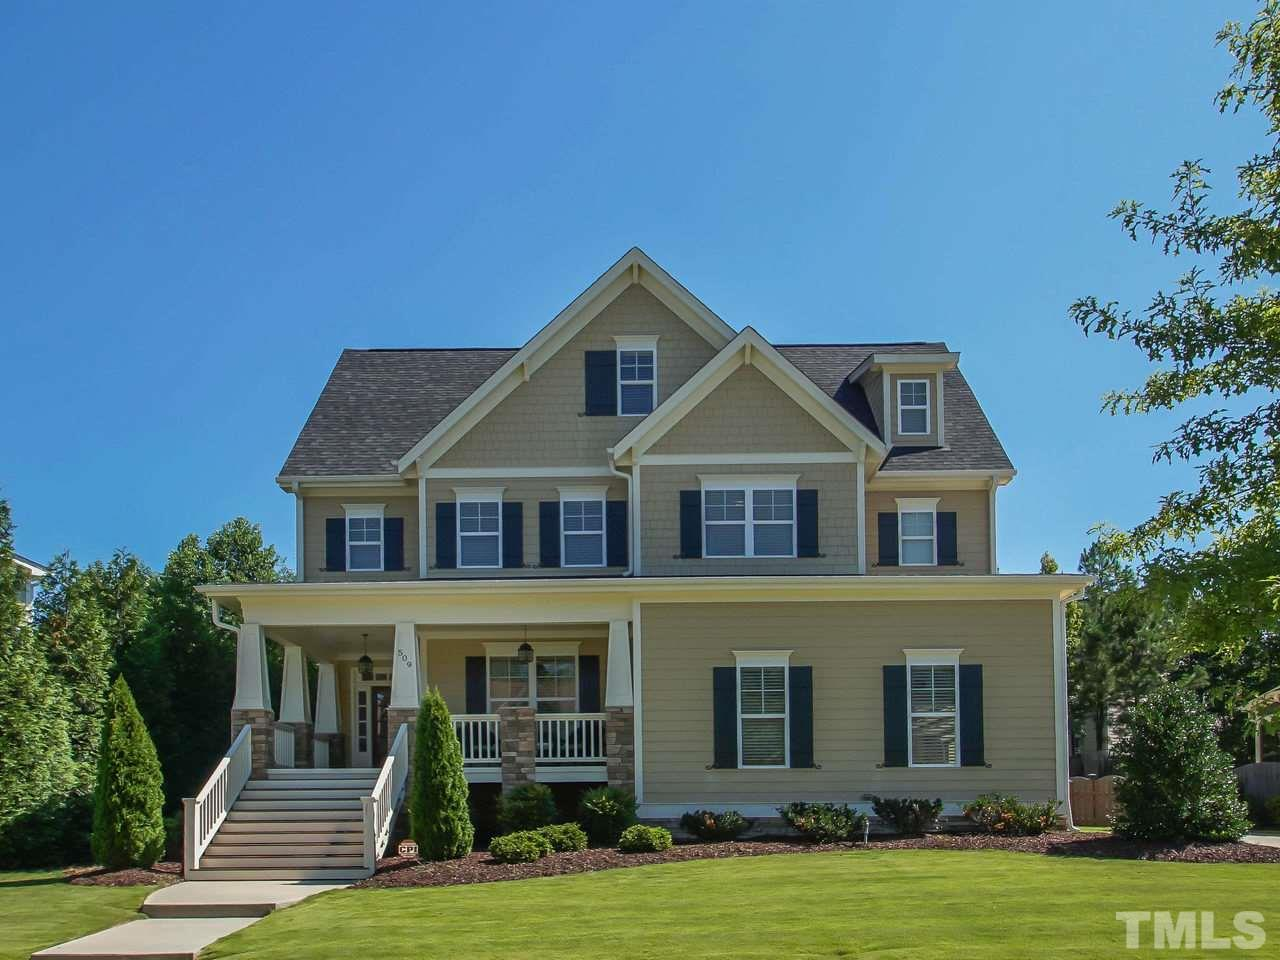 509 Wanderview Lane, Holly Springs, NC 27540